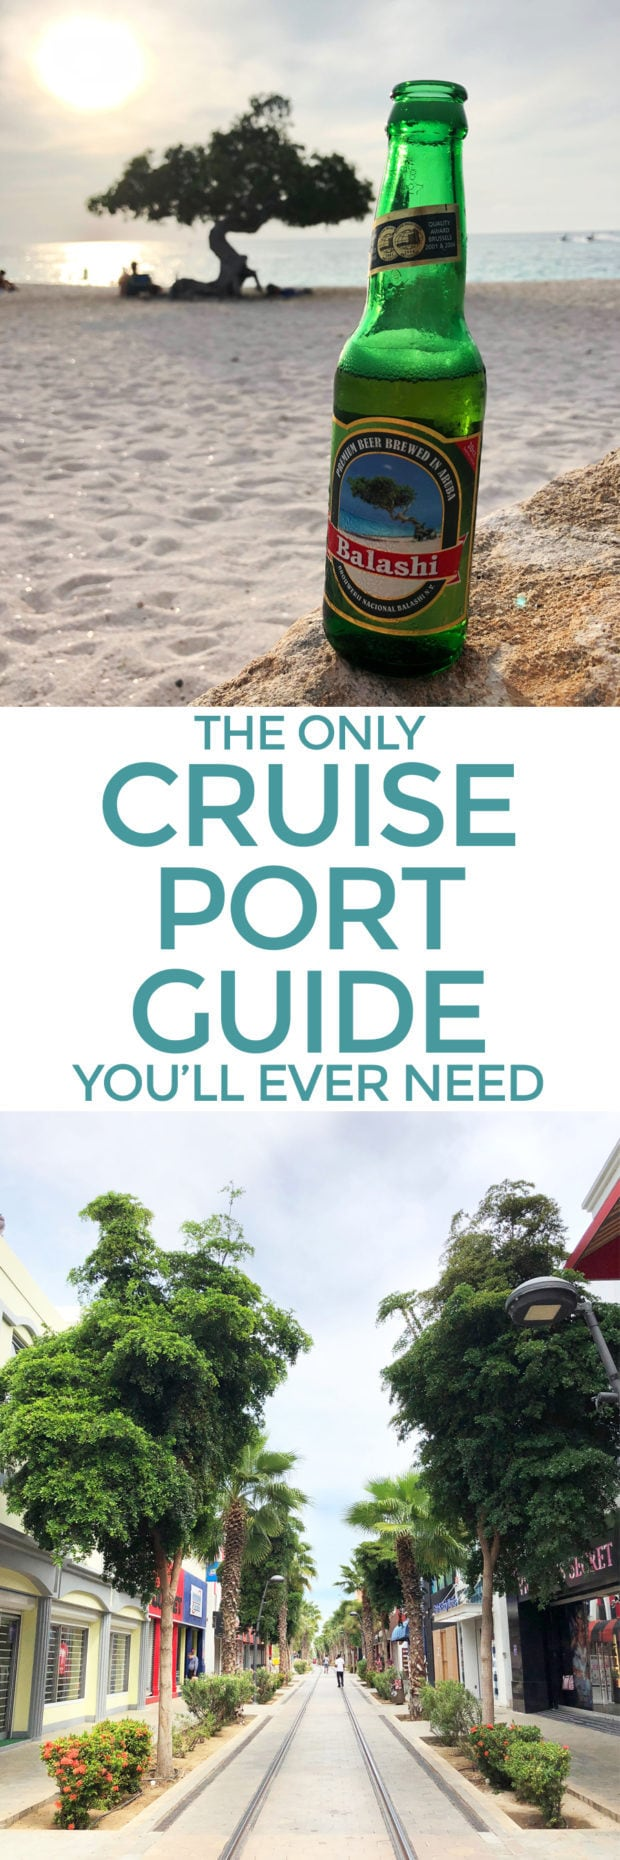 The Only Cruise Port Guide You'll Ever Need